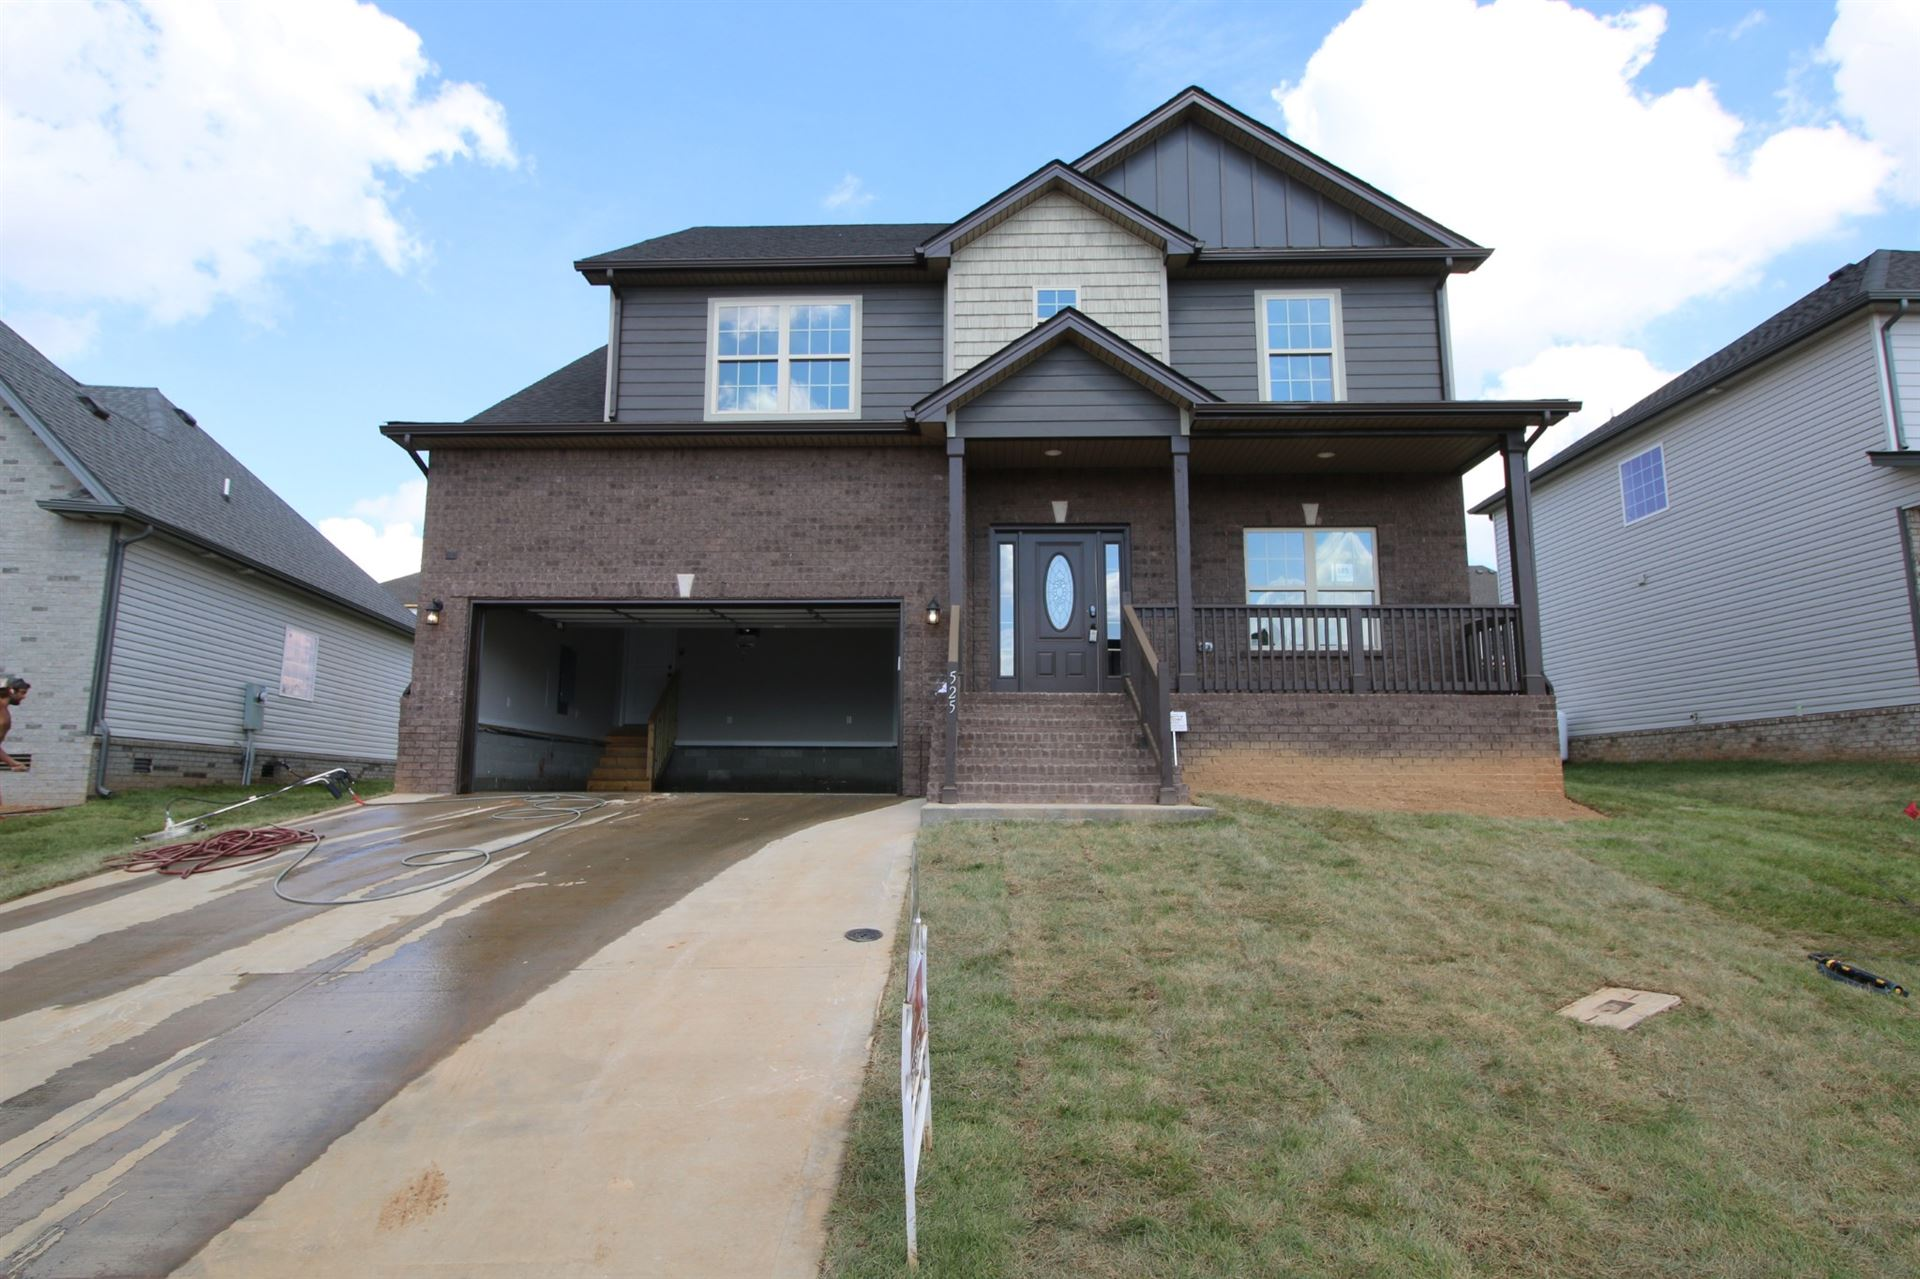 185 Charleston Oaks Reserves, Clarksville, TN 37042 - MLS#: 2235437